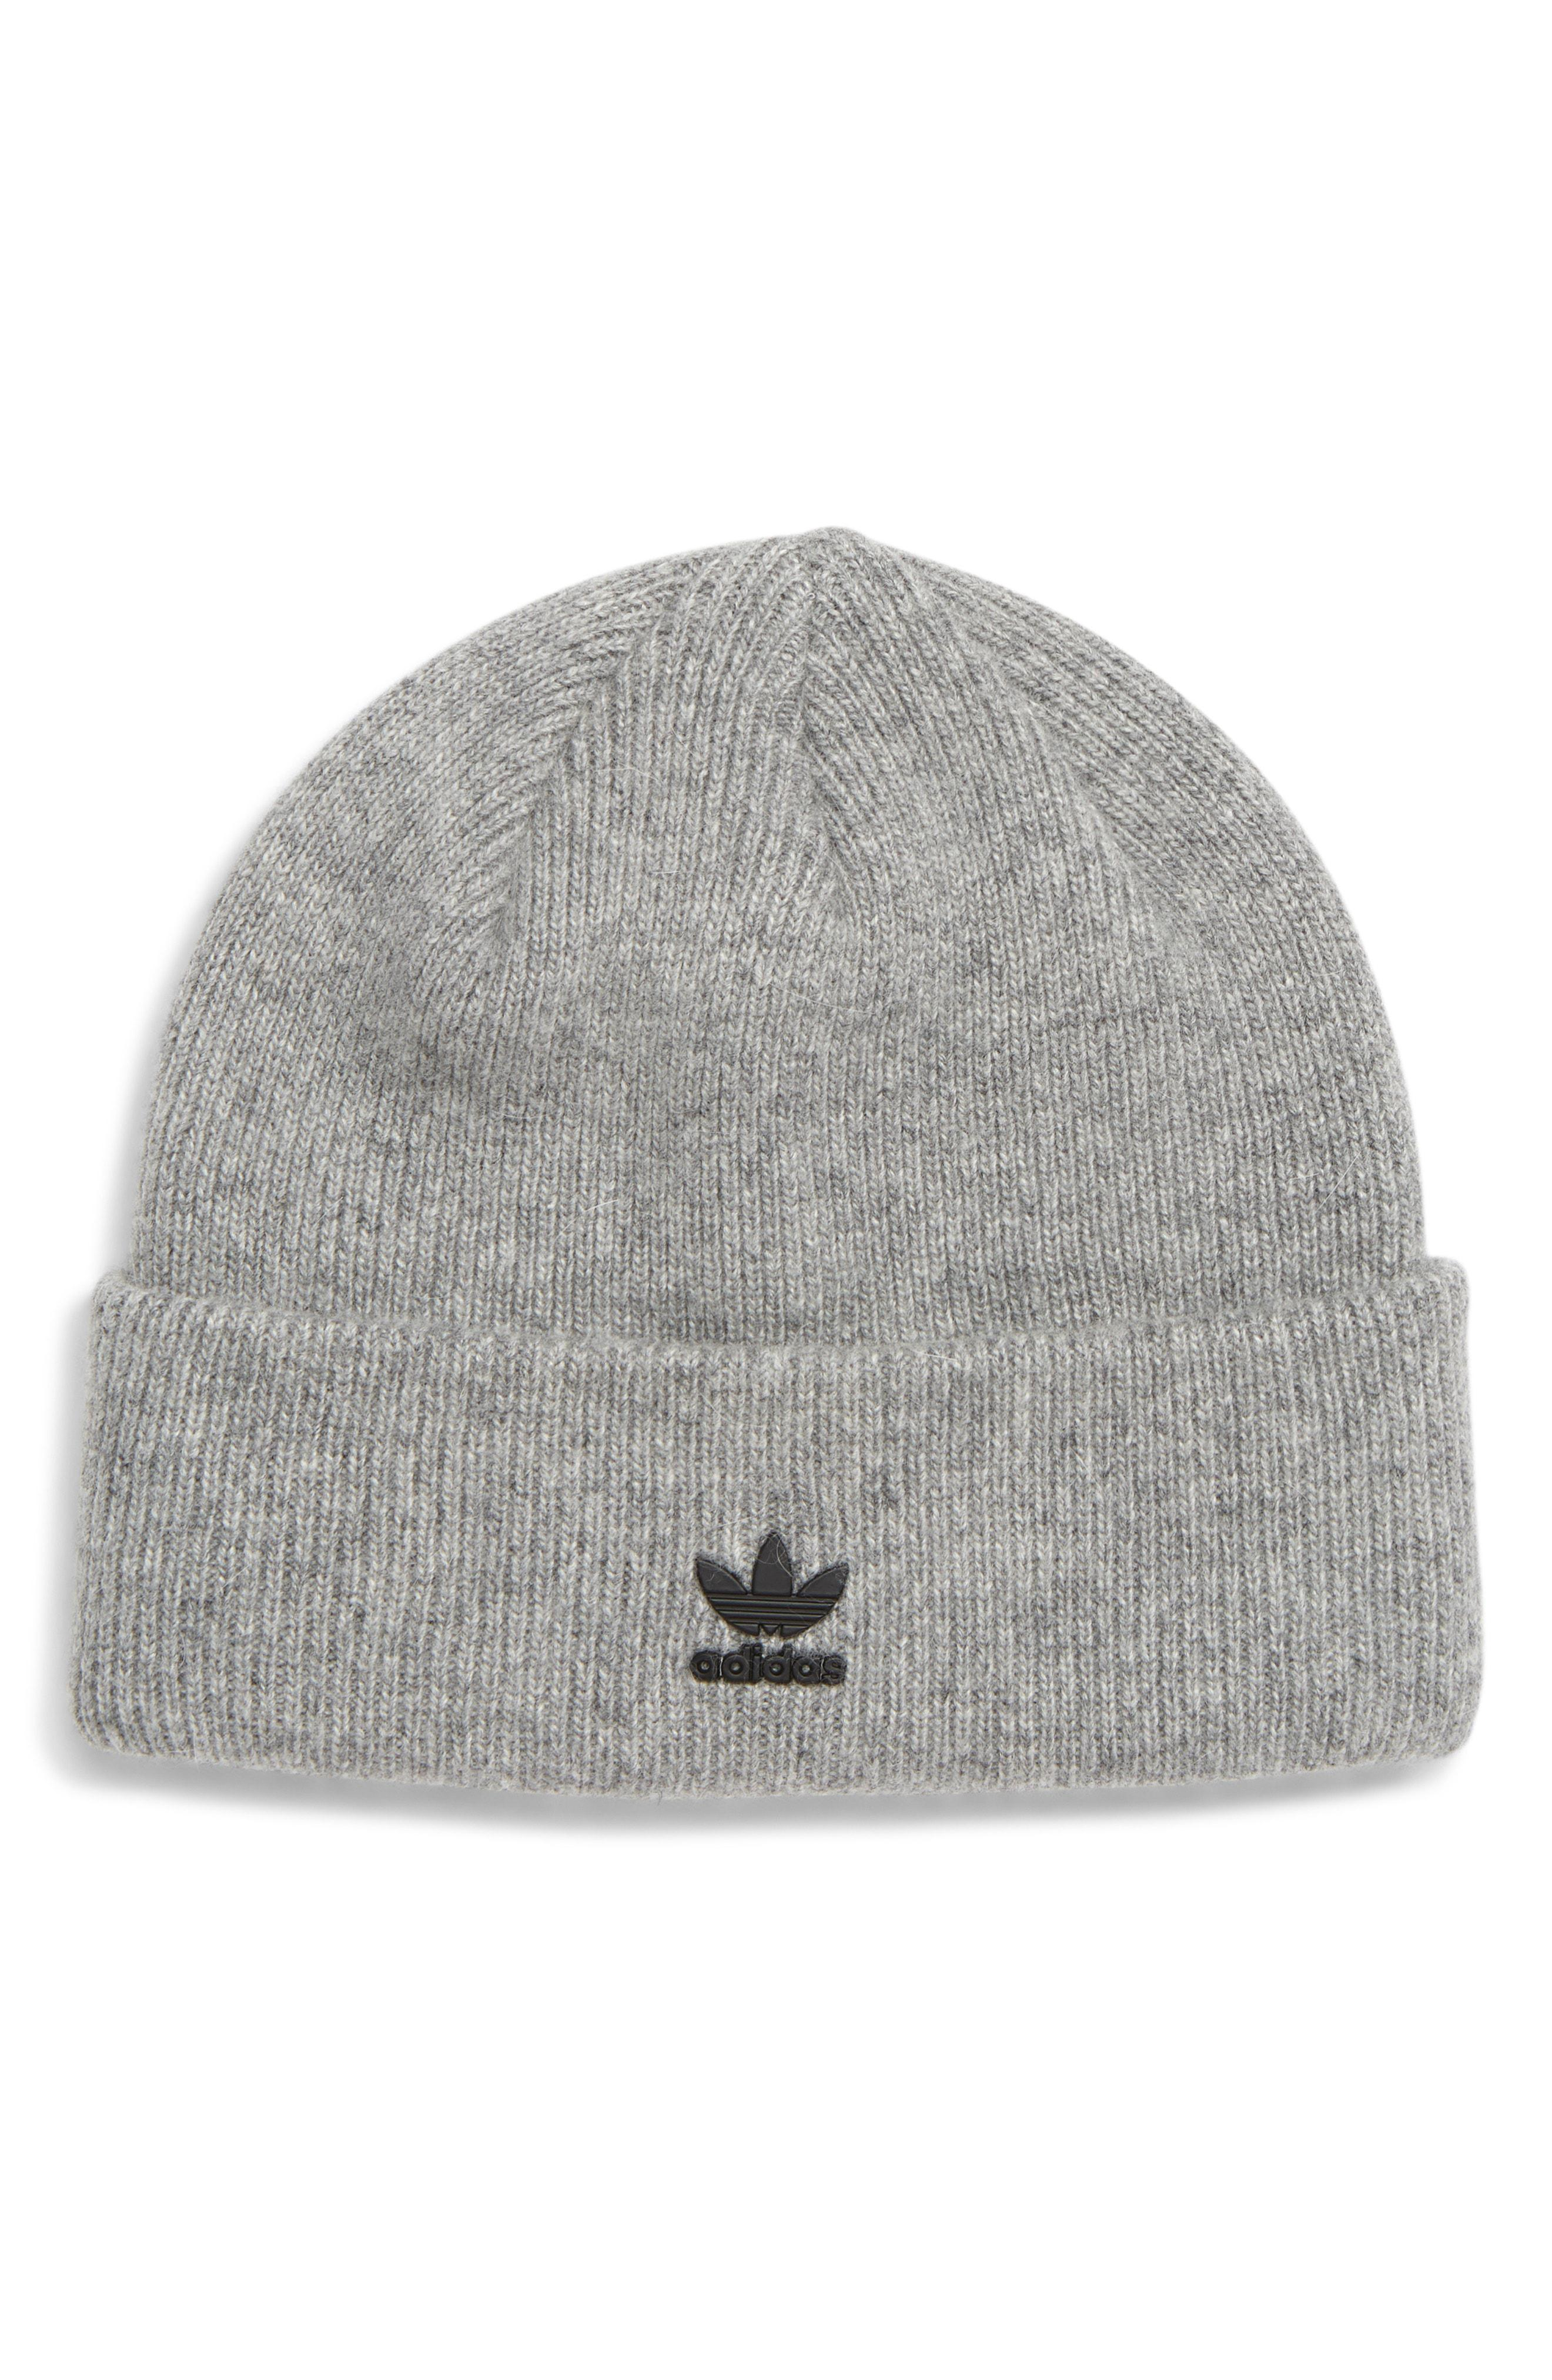 5f5ac89120999 adidas Originals Metal Trefoil Beanie - in Gray for Men - Lyst